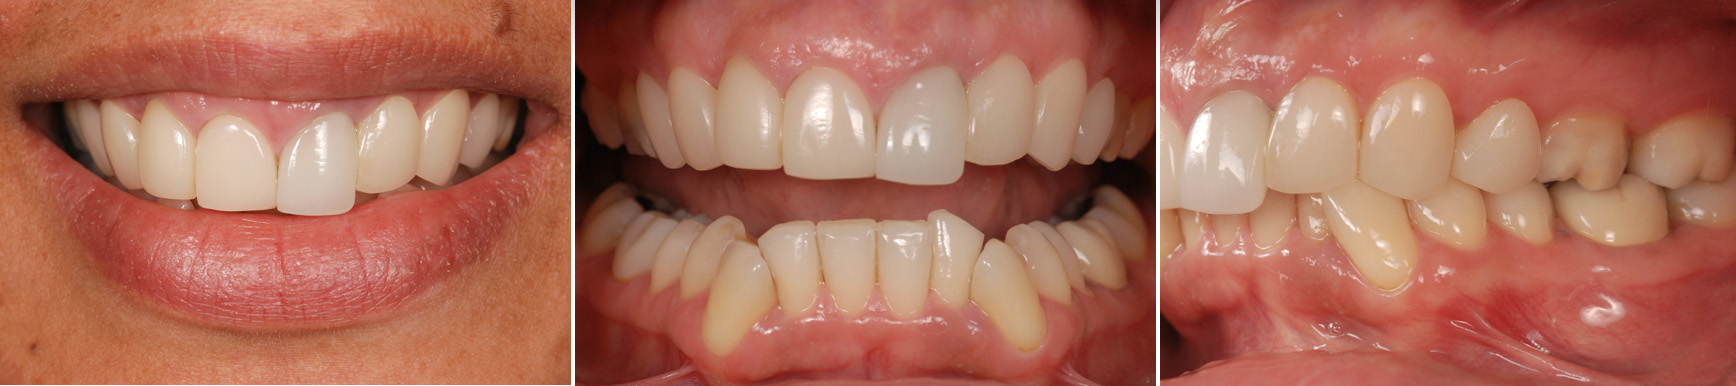 Removing Ceramic Veneers With a Laser: Part 2